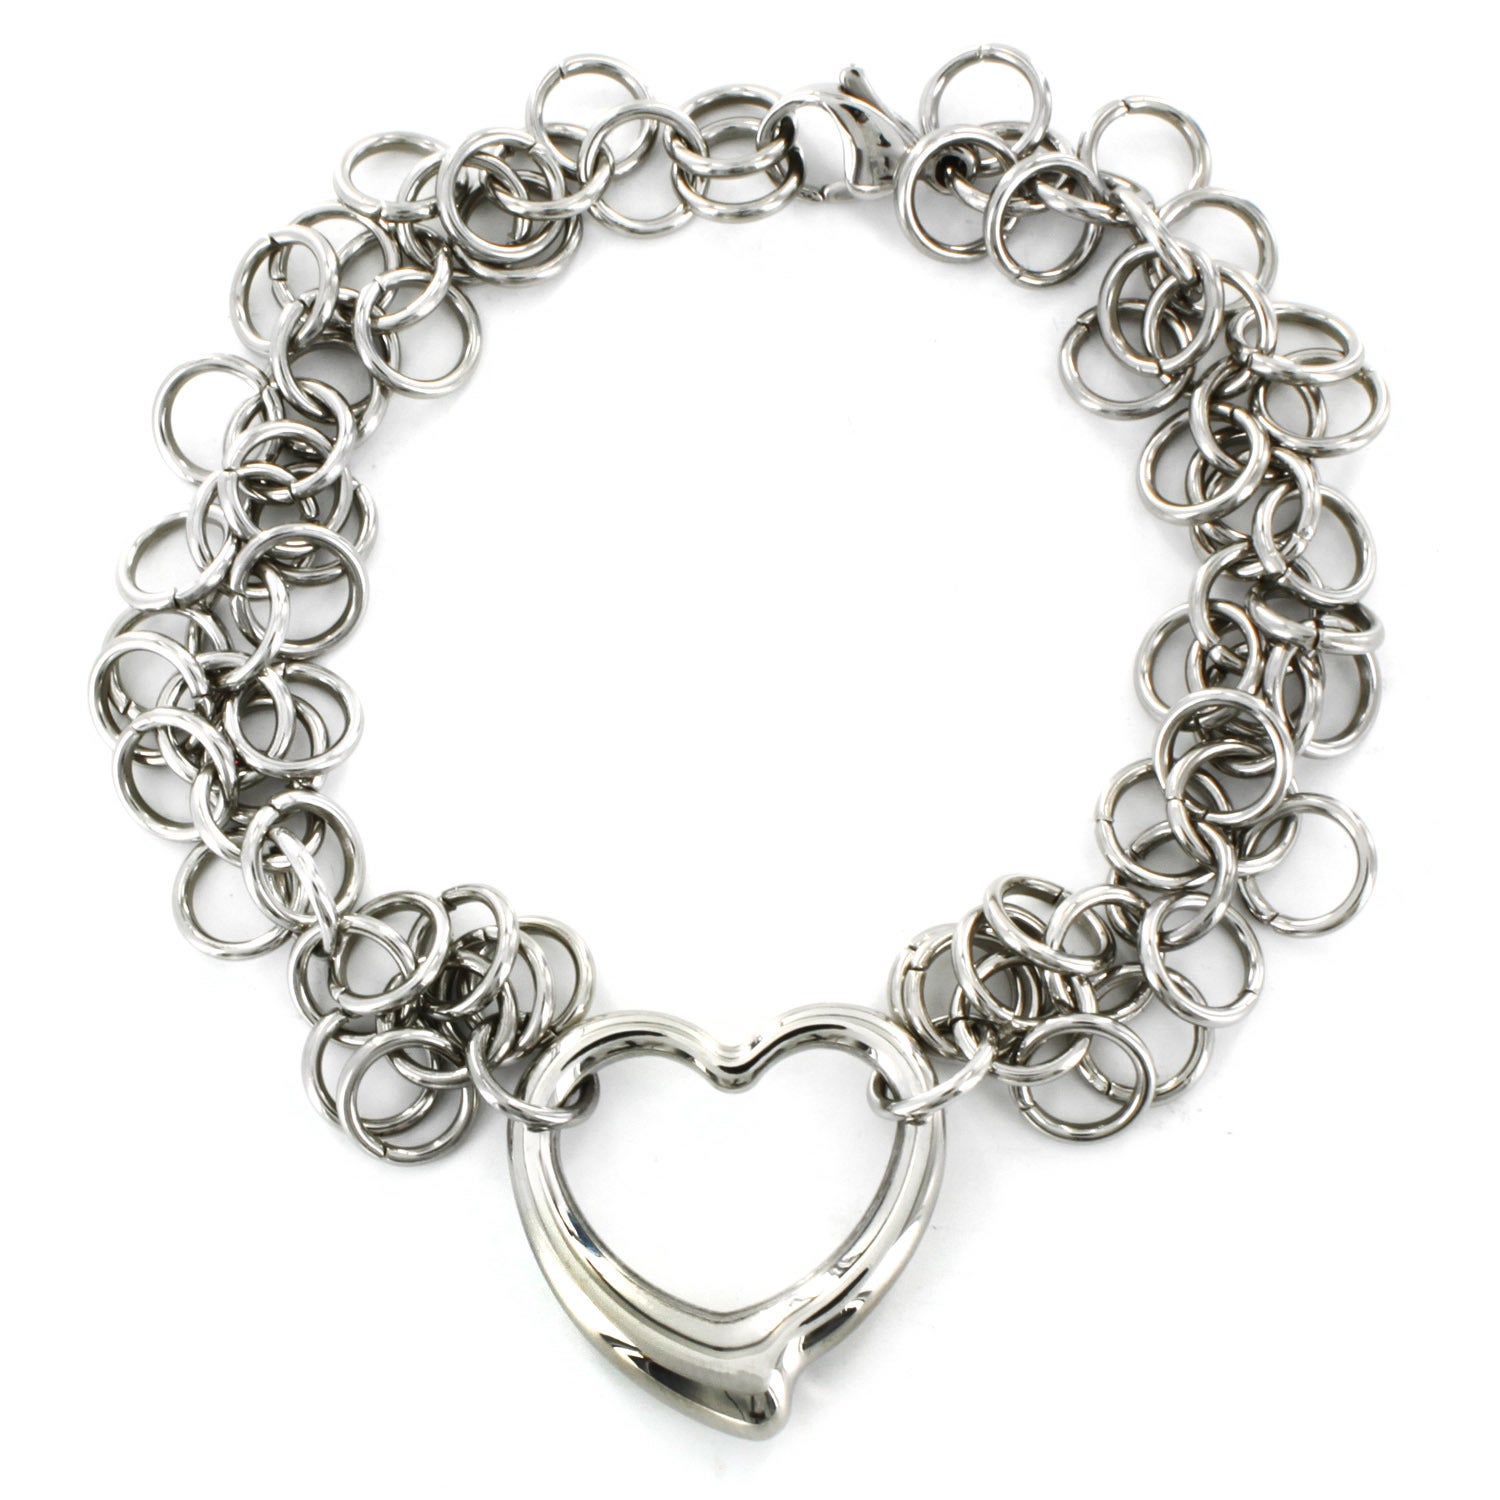 Sensible Fashion Women Lady Silver Plated Crystal Bangle Love Heart Charm Bracelet Gl Available In Various Designs And Specifications For Your Selection Bracelets Jewelry & Watches